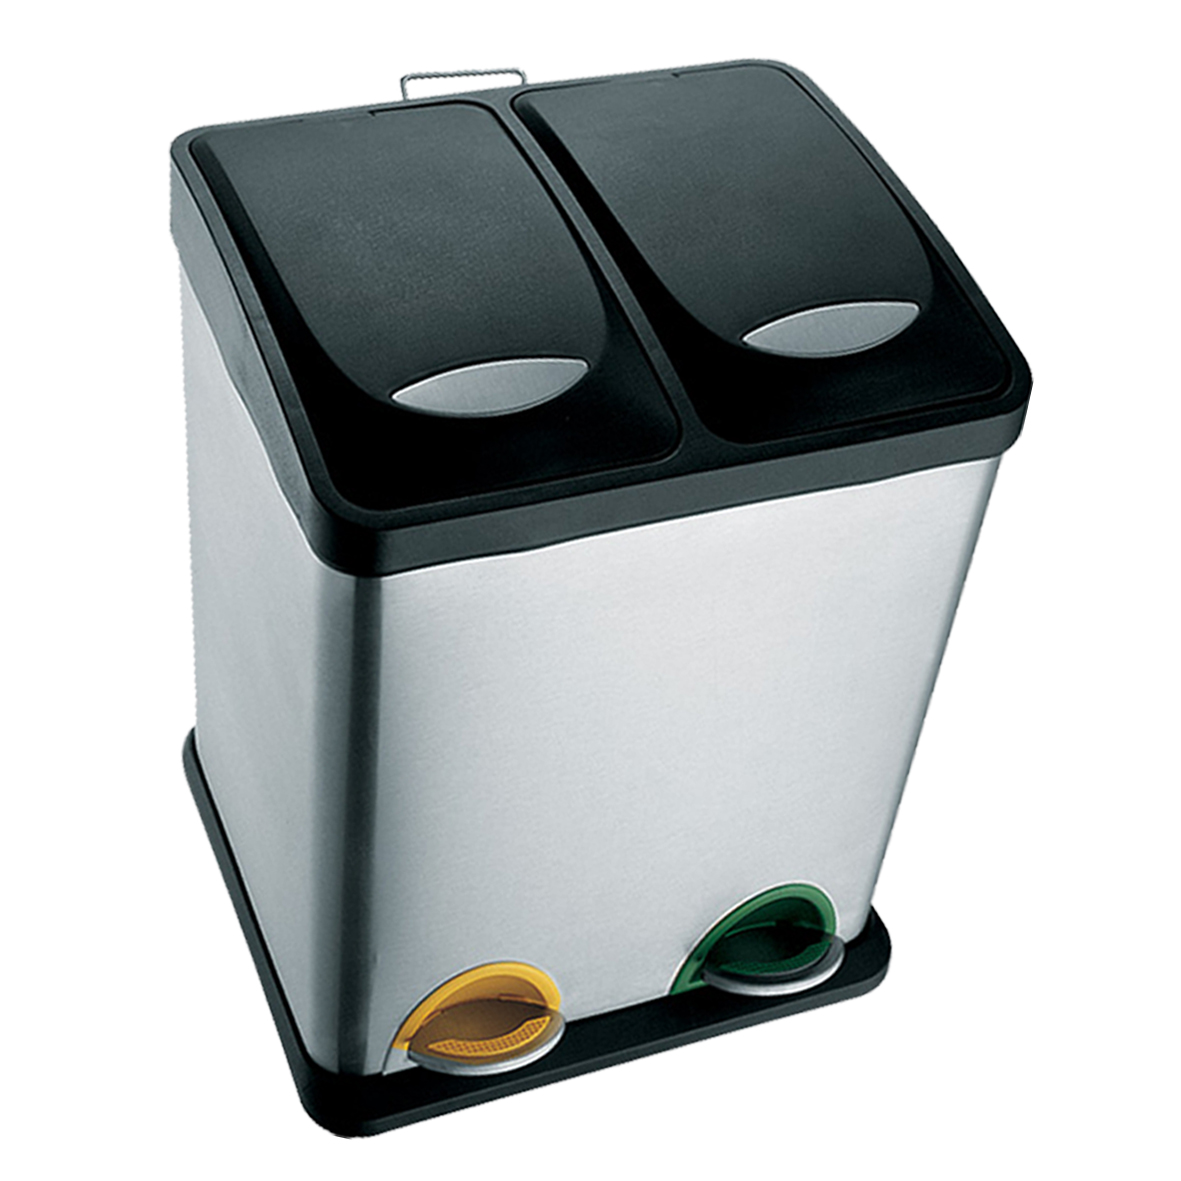 101-01569b-home-accessories-rio-2-compartment-recycling-pedal-bin